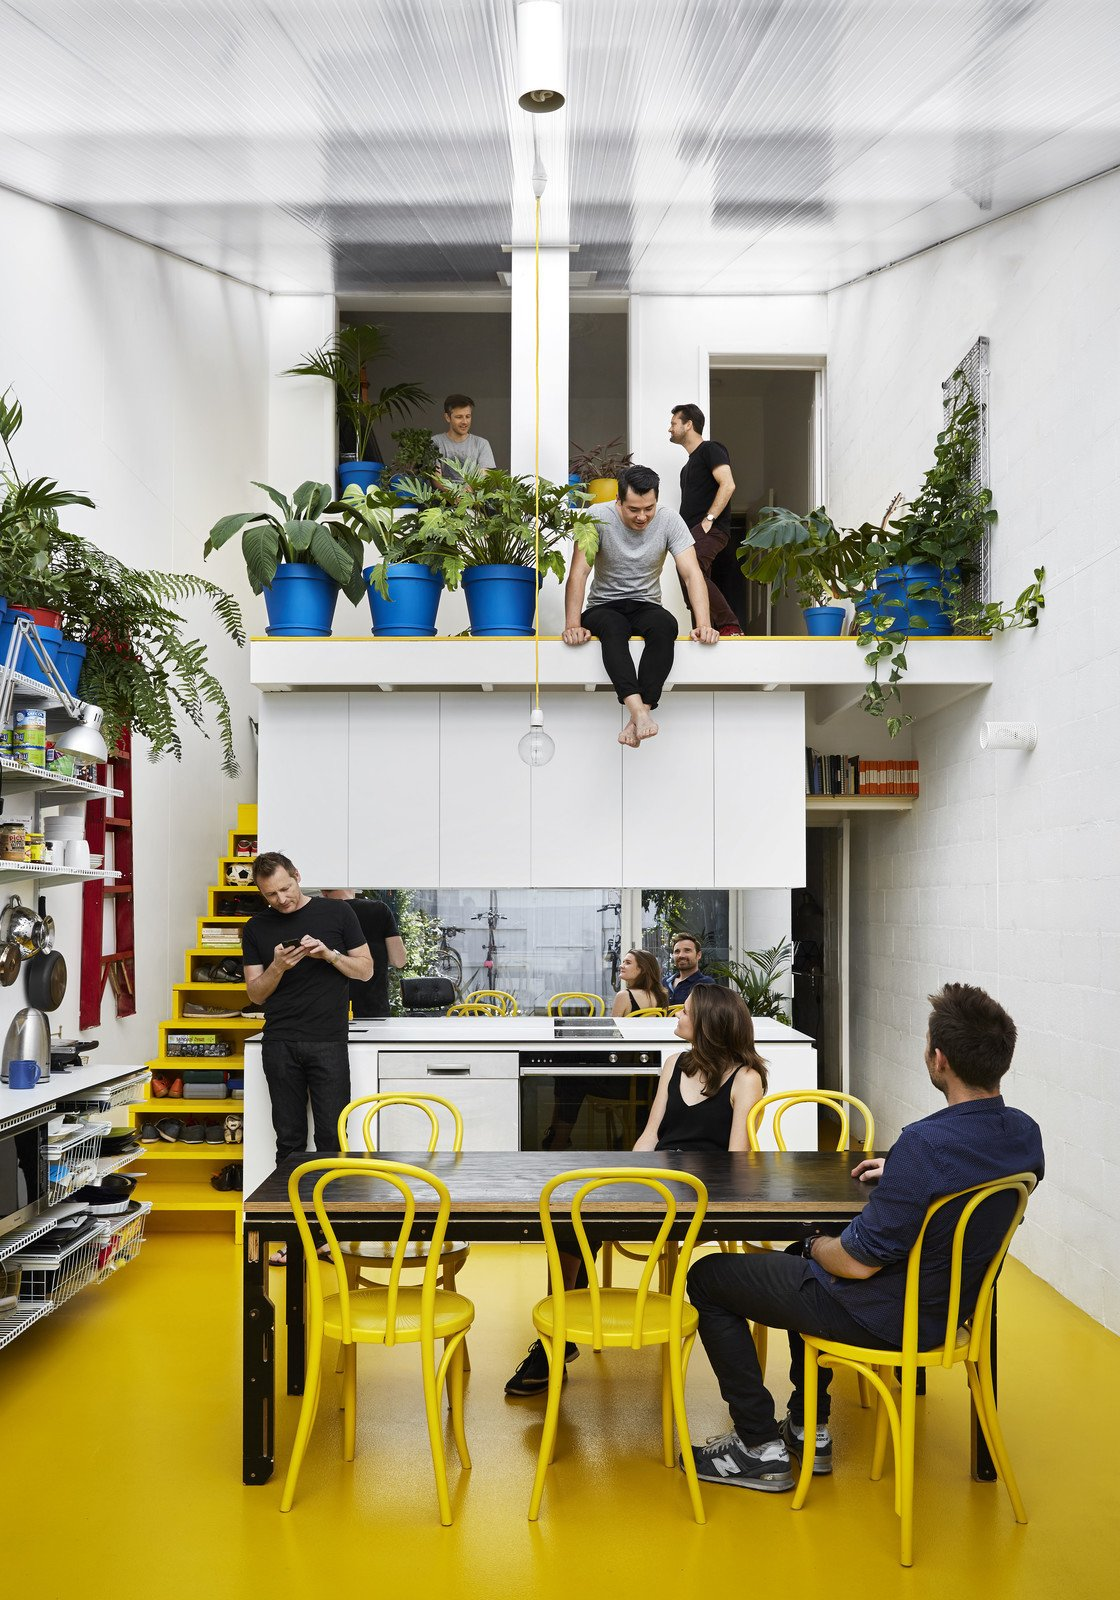 In an attempt to beat the winter blues and improve his work/life balance, Australian architect Andrew Maynard combines his home with his office in a sun-drenched Victorian terrace with bright bursts of yellow. In 2016, architect Andrew Maynard of Austin Maynard Architects (AMA) decided to transform the way he and his team live and work. At the end of winter, Maynard visited a doctor about his increasing levels of stress and anxiety. The doctor's suggestion was that he get more vitamin D to improve his mental health. Maynard decided to radically renovate his dark, Victorian-style terrace house in Melbourne, and flood it with therapeutic sunshine. Tagged: Dining Room, Chair, Linoleum Floor, and Table.  Photo 2 of 12 in An Architect Turns His Victorian Home Into a Sun-Drenched Live/Work Space